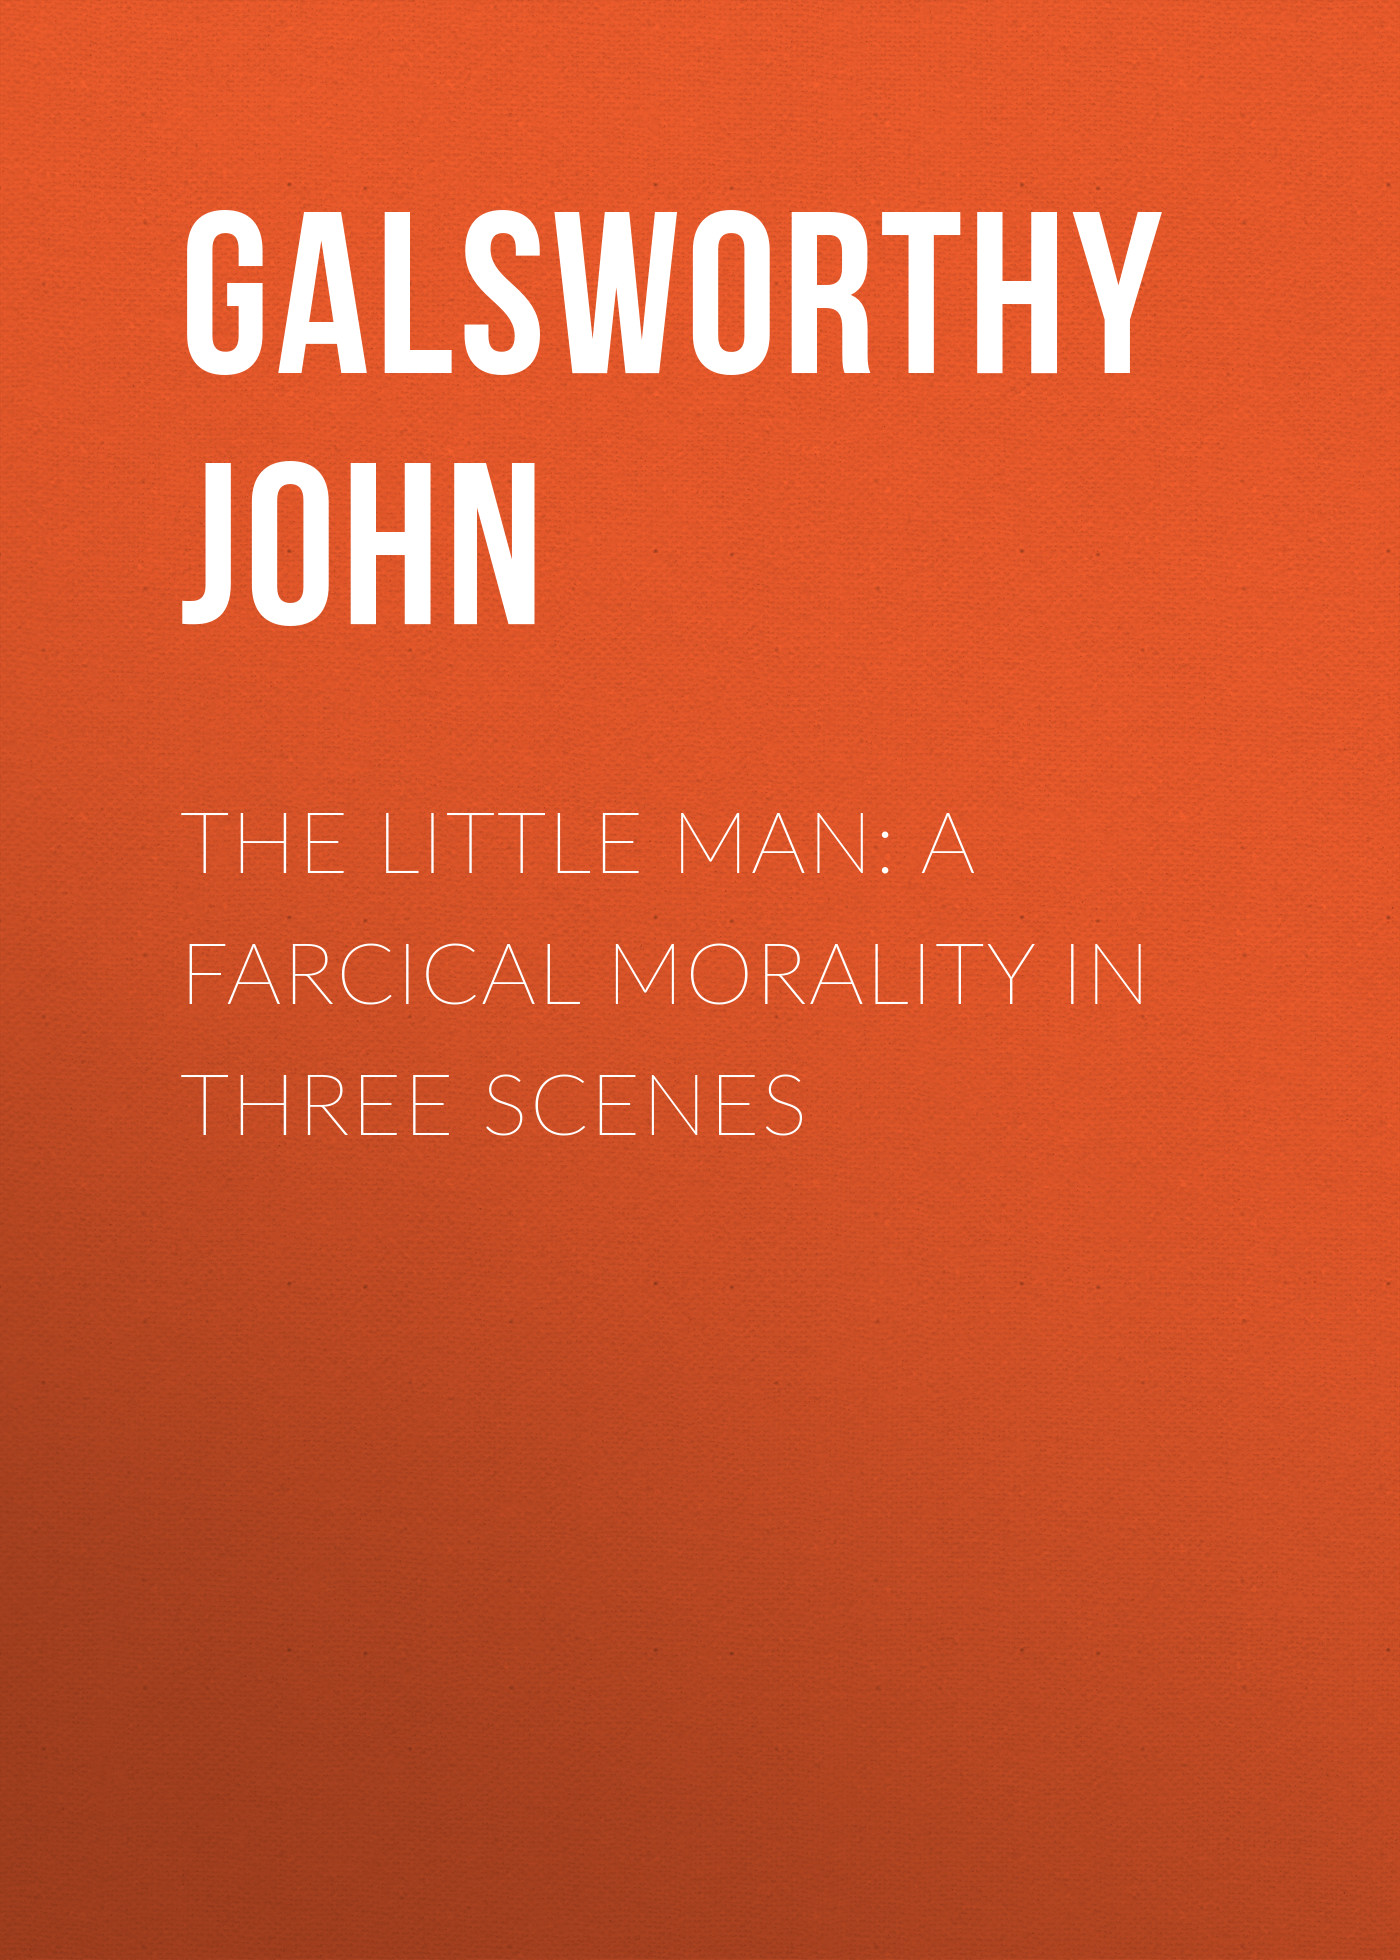 Galsworthy John The Little Man: A Farcical Morality in Three Scenes galsworthy john quotes and images from the works of john galsworthy